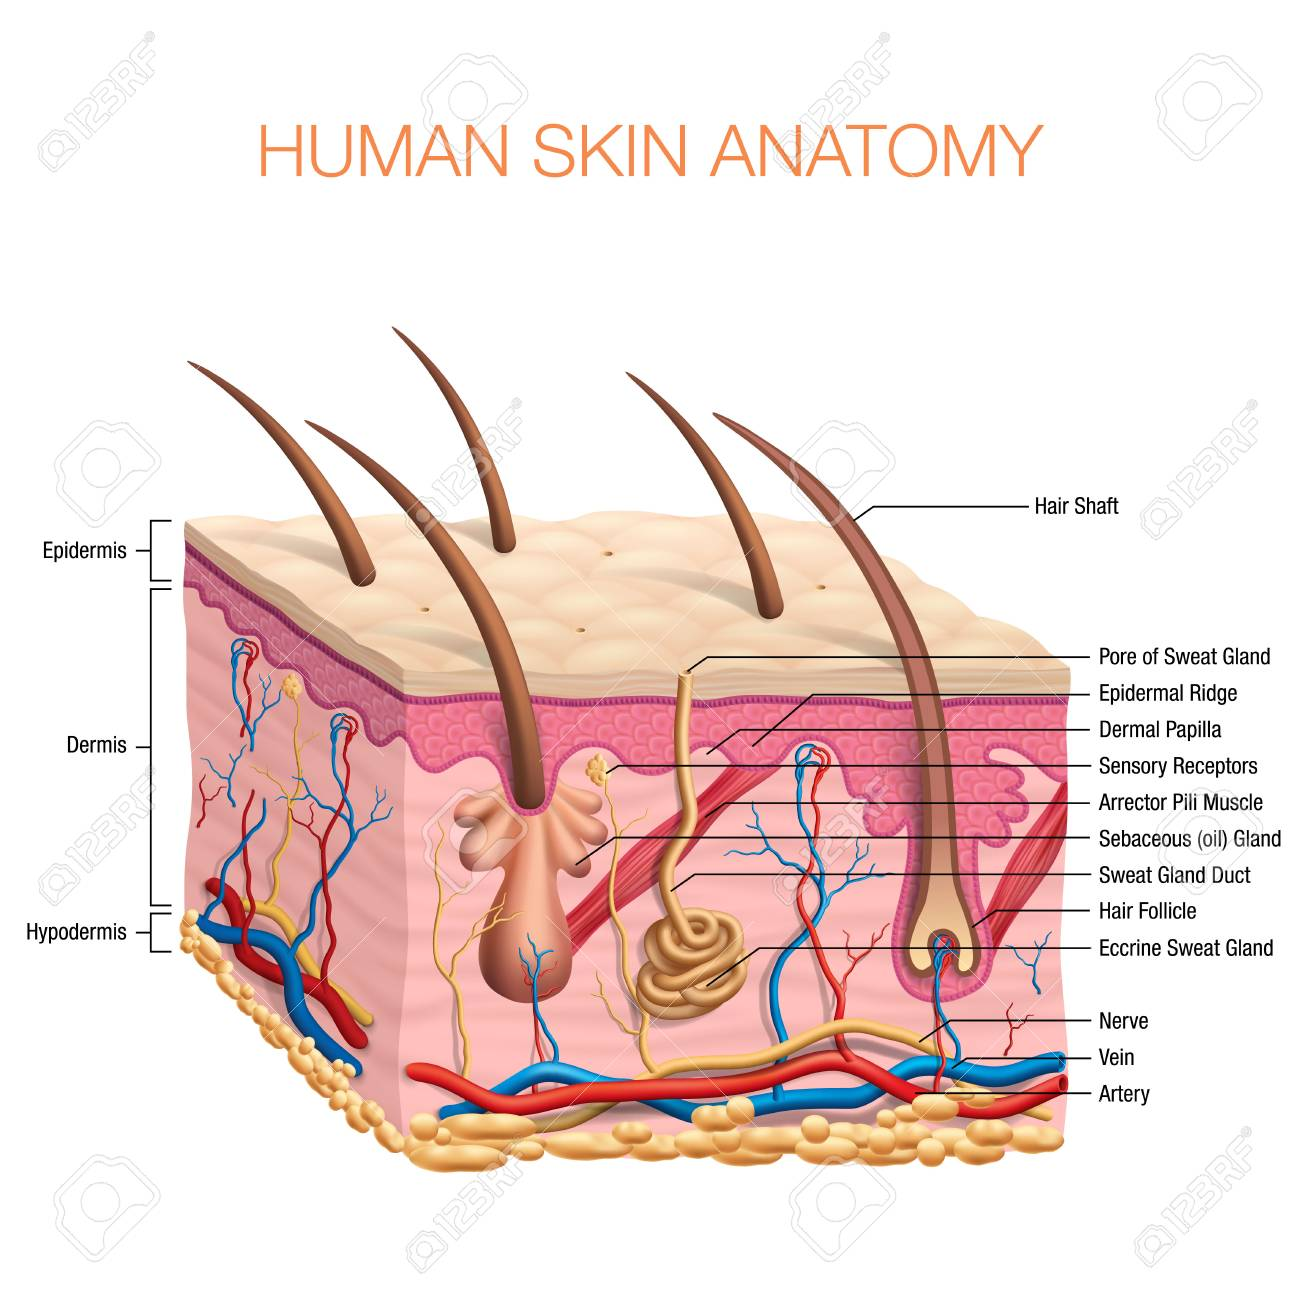 Human Skin Anatomy Vector Illustration Isolated Background Royalty